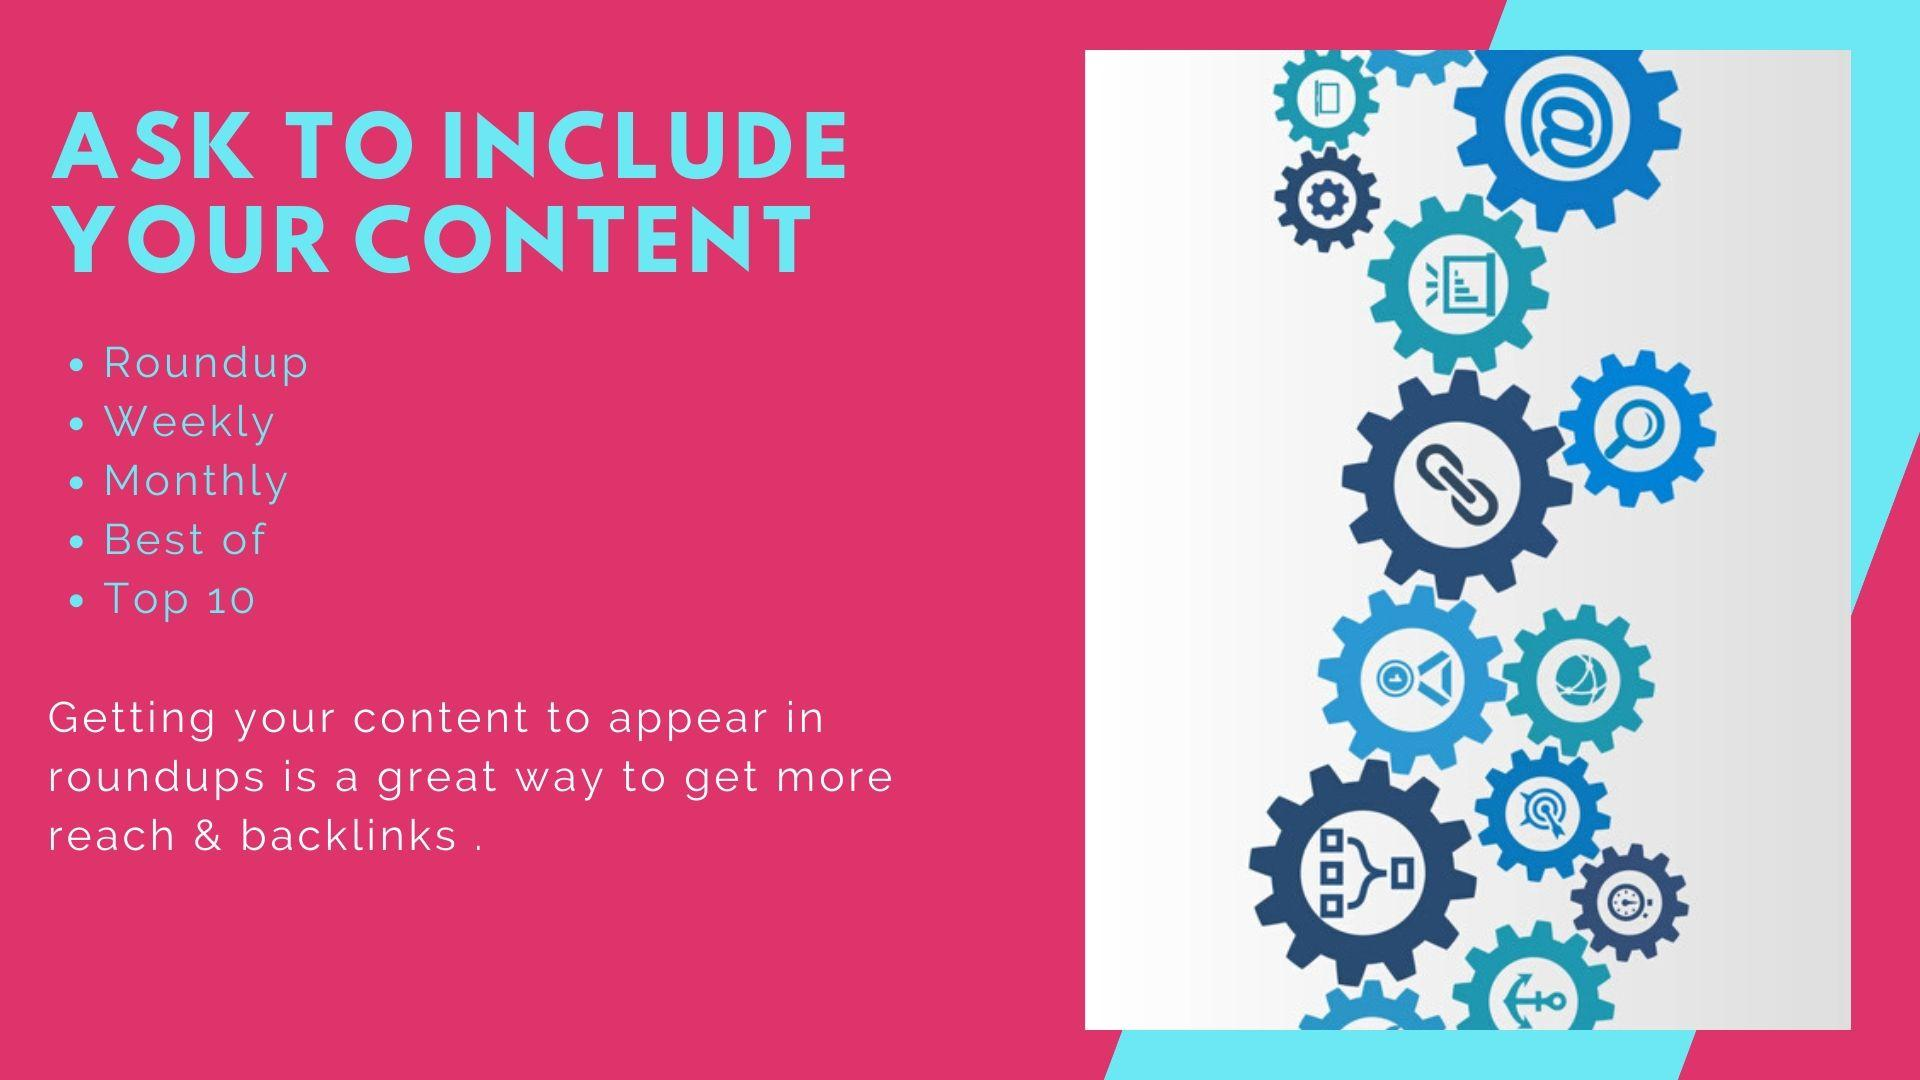 Content - Ask to include your content